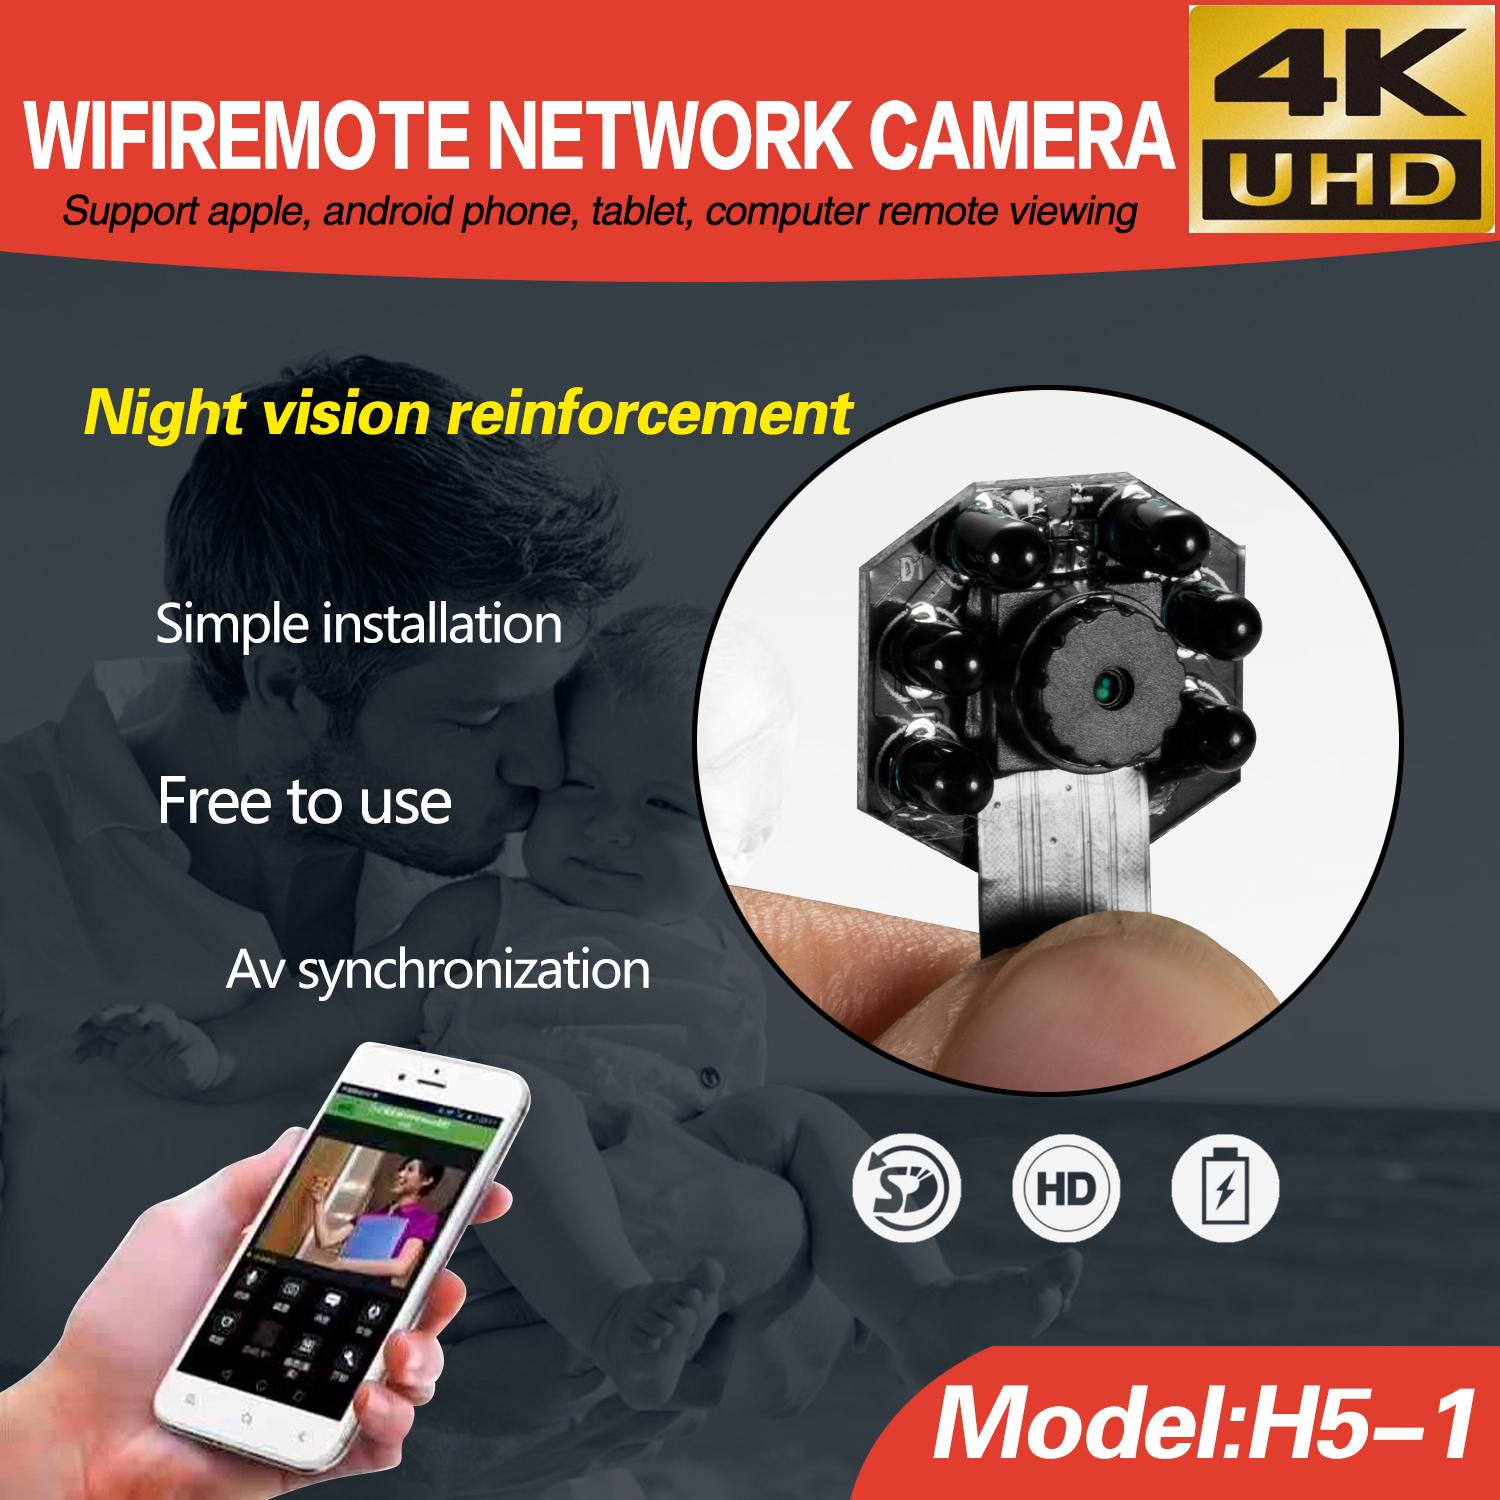 Spy Camera For Sale Cam Prices Brands Specs In Philippines Channel Remote View Mobile Dvr With Shock Sensor And Wifi Antenna 12mp 4k Mini Wireless Hd Diy Pinhole Invisible Module Video Infrared Night